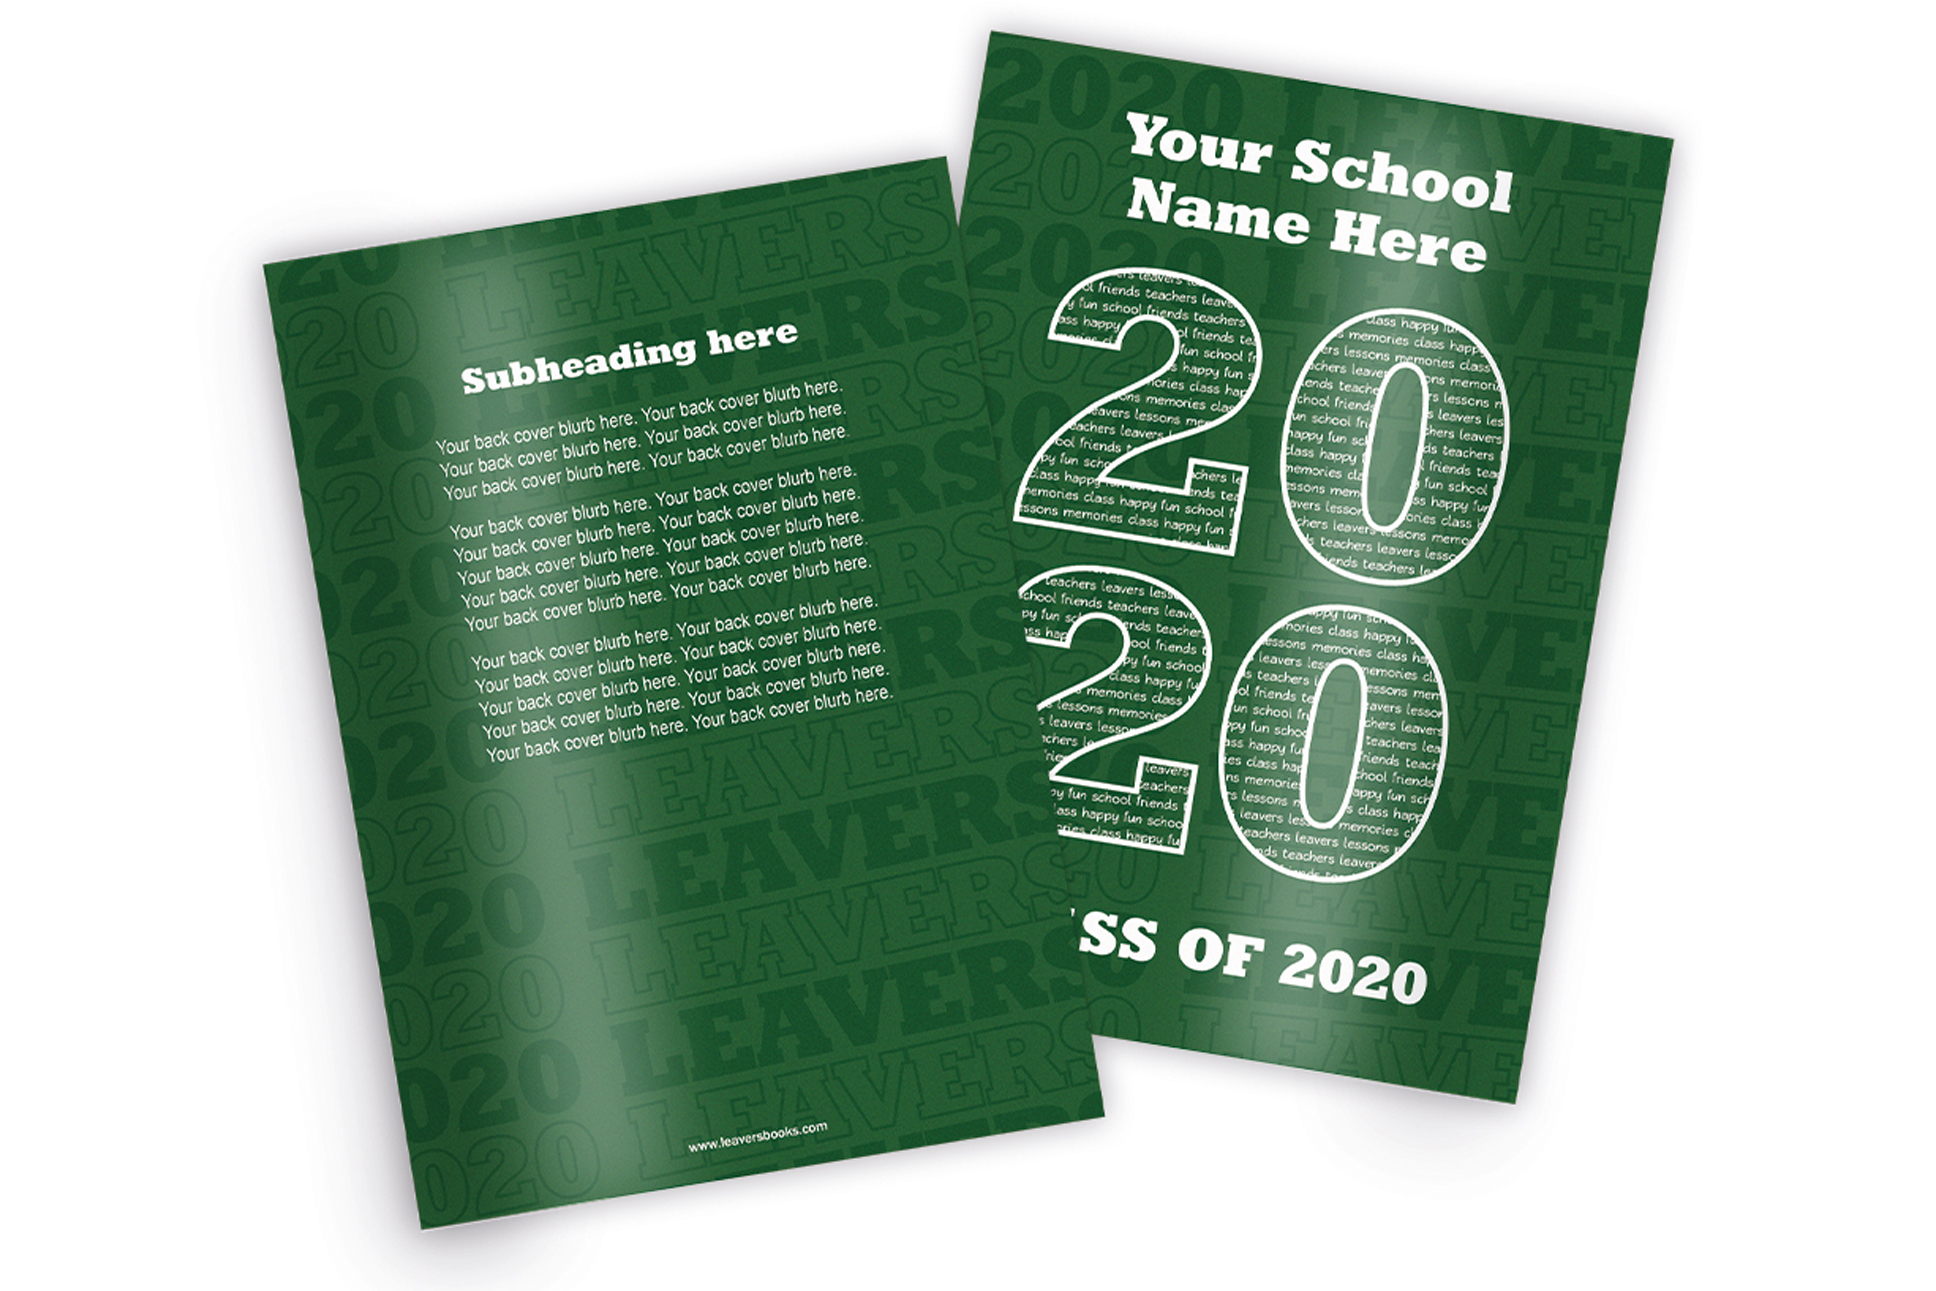 Varsity Green Yearbook Covers